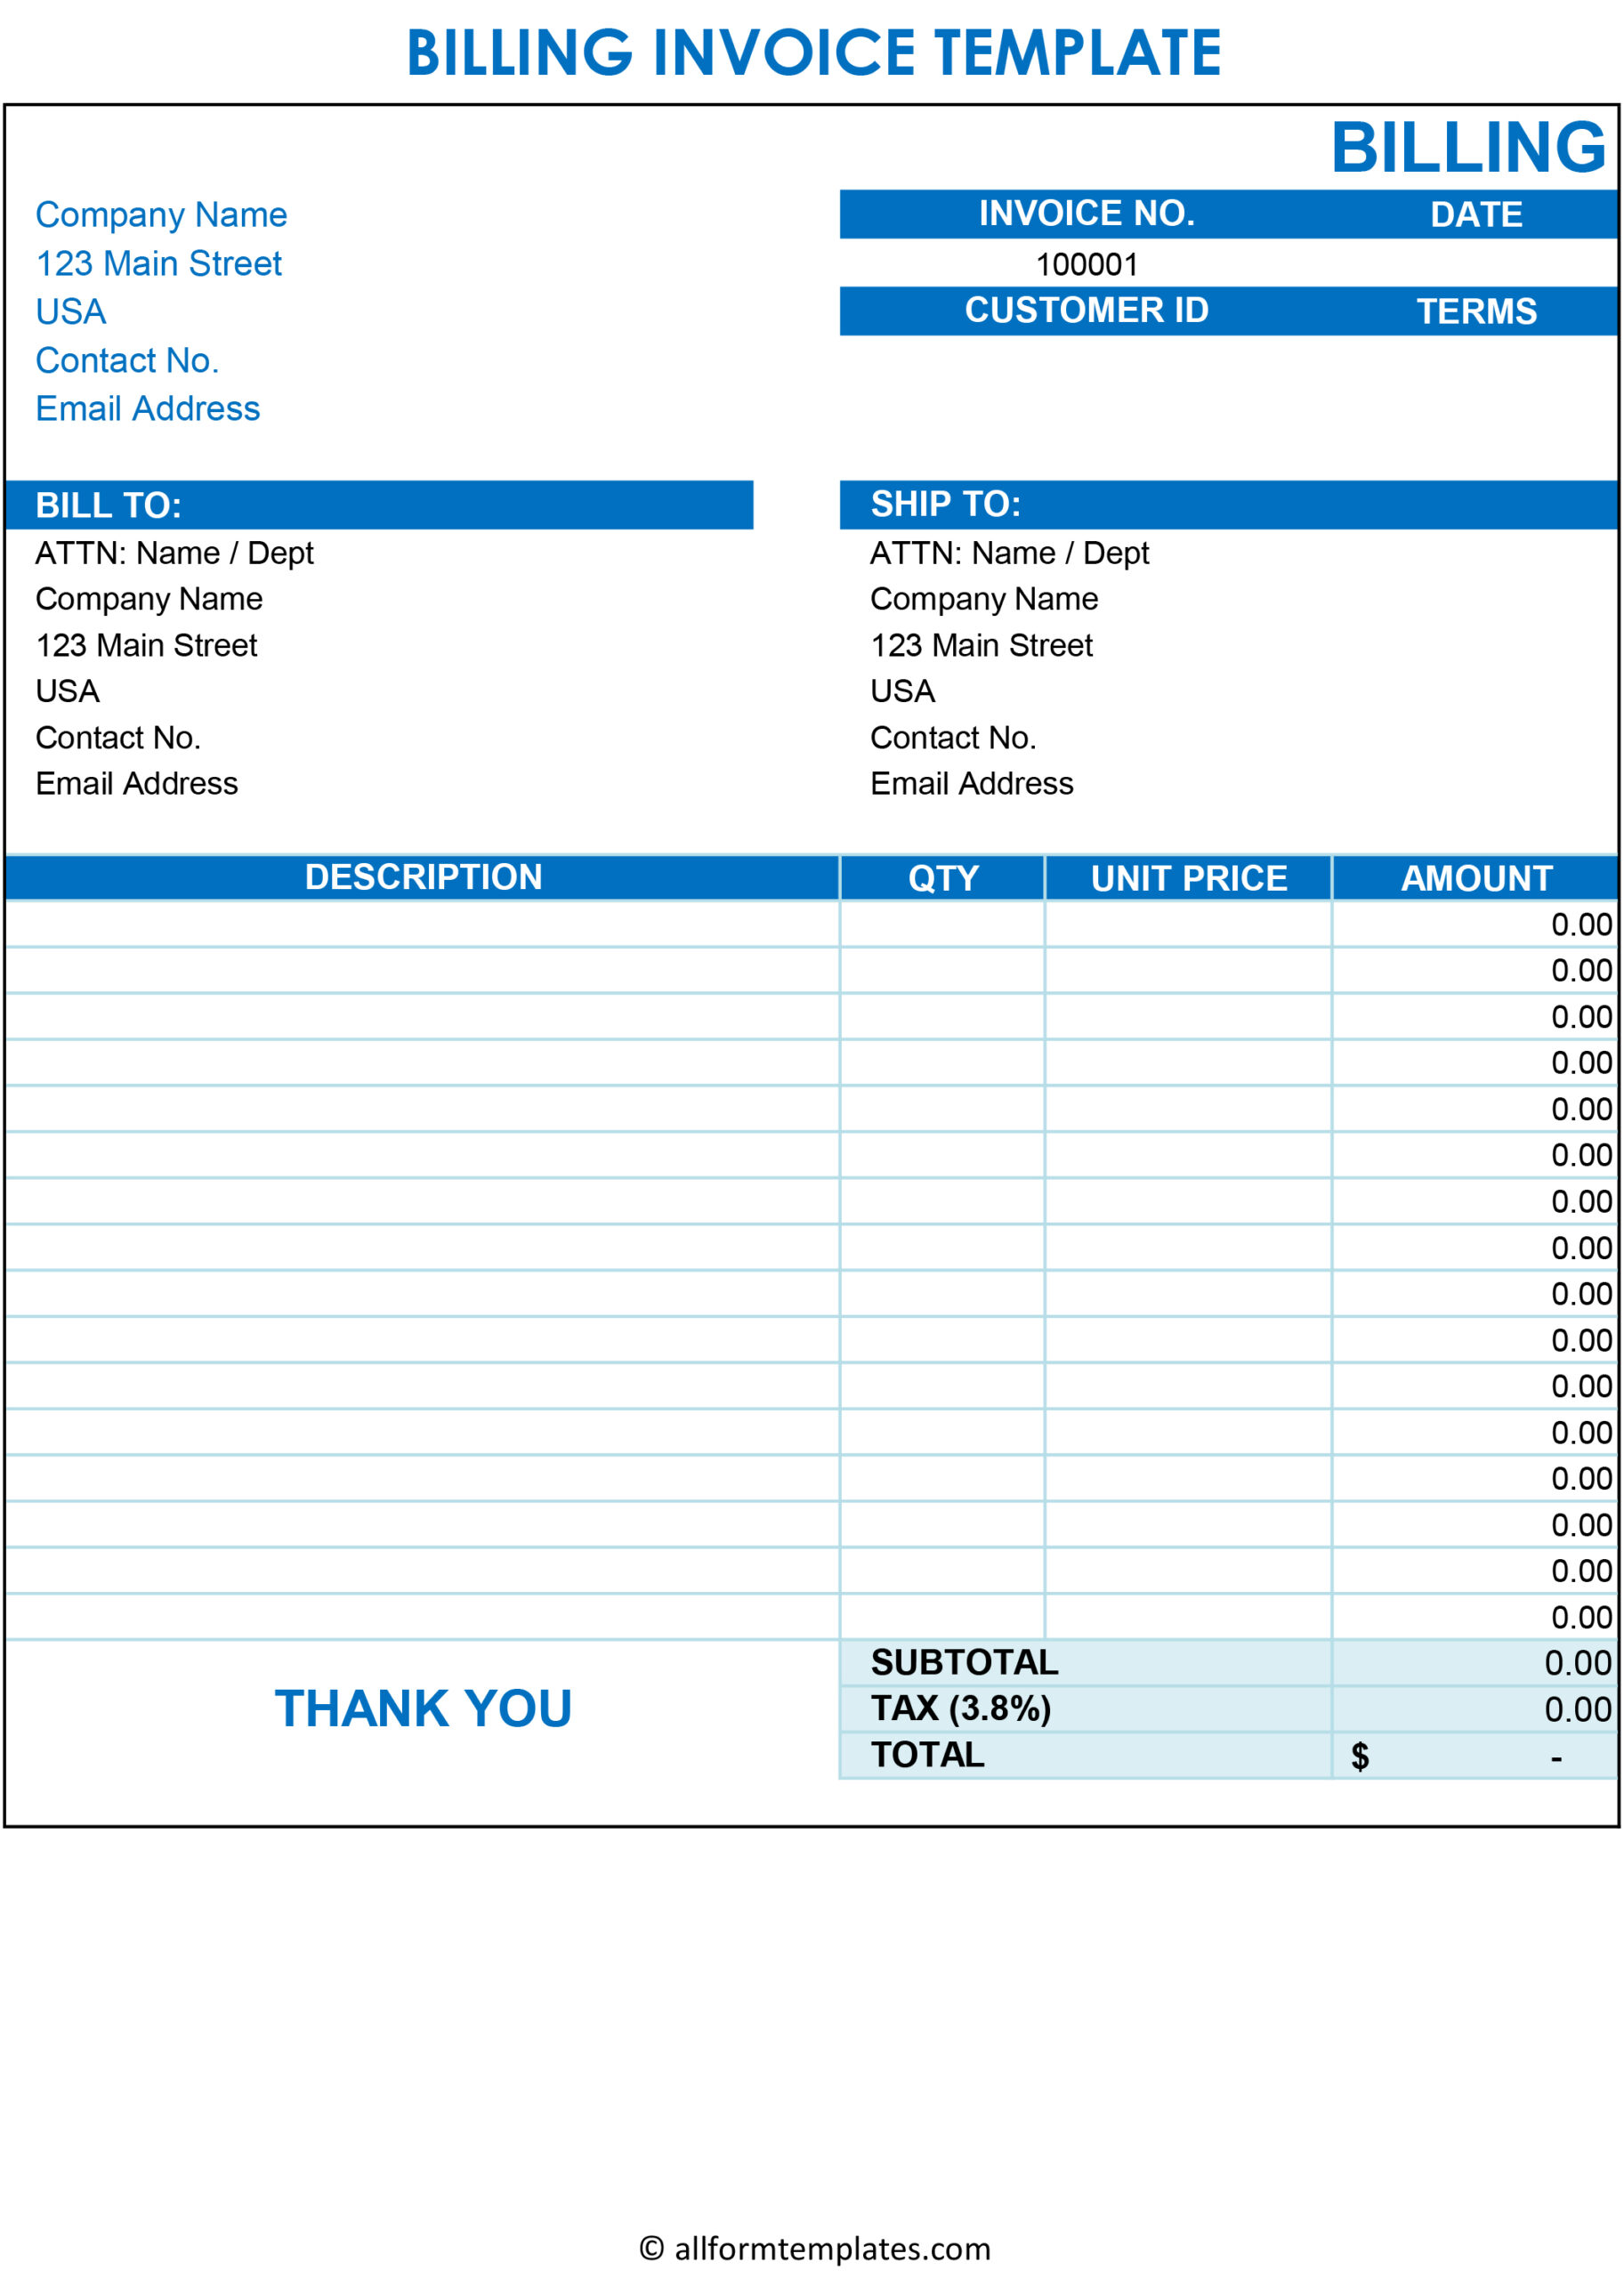 Printable-Invoice-Template-HD